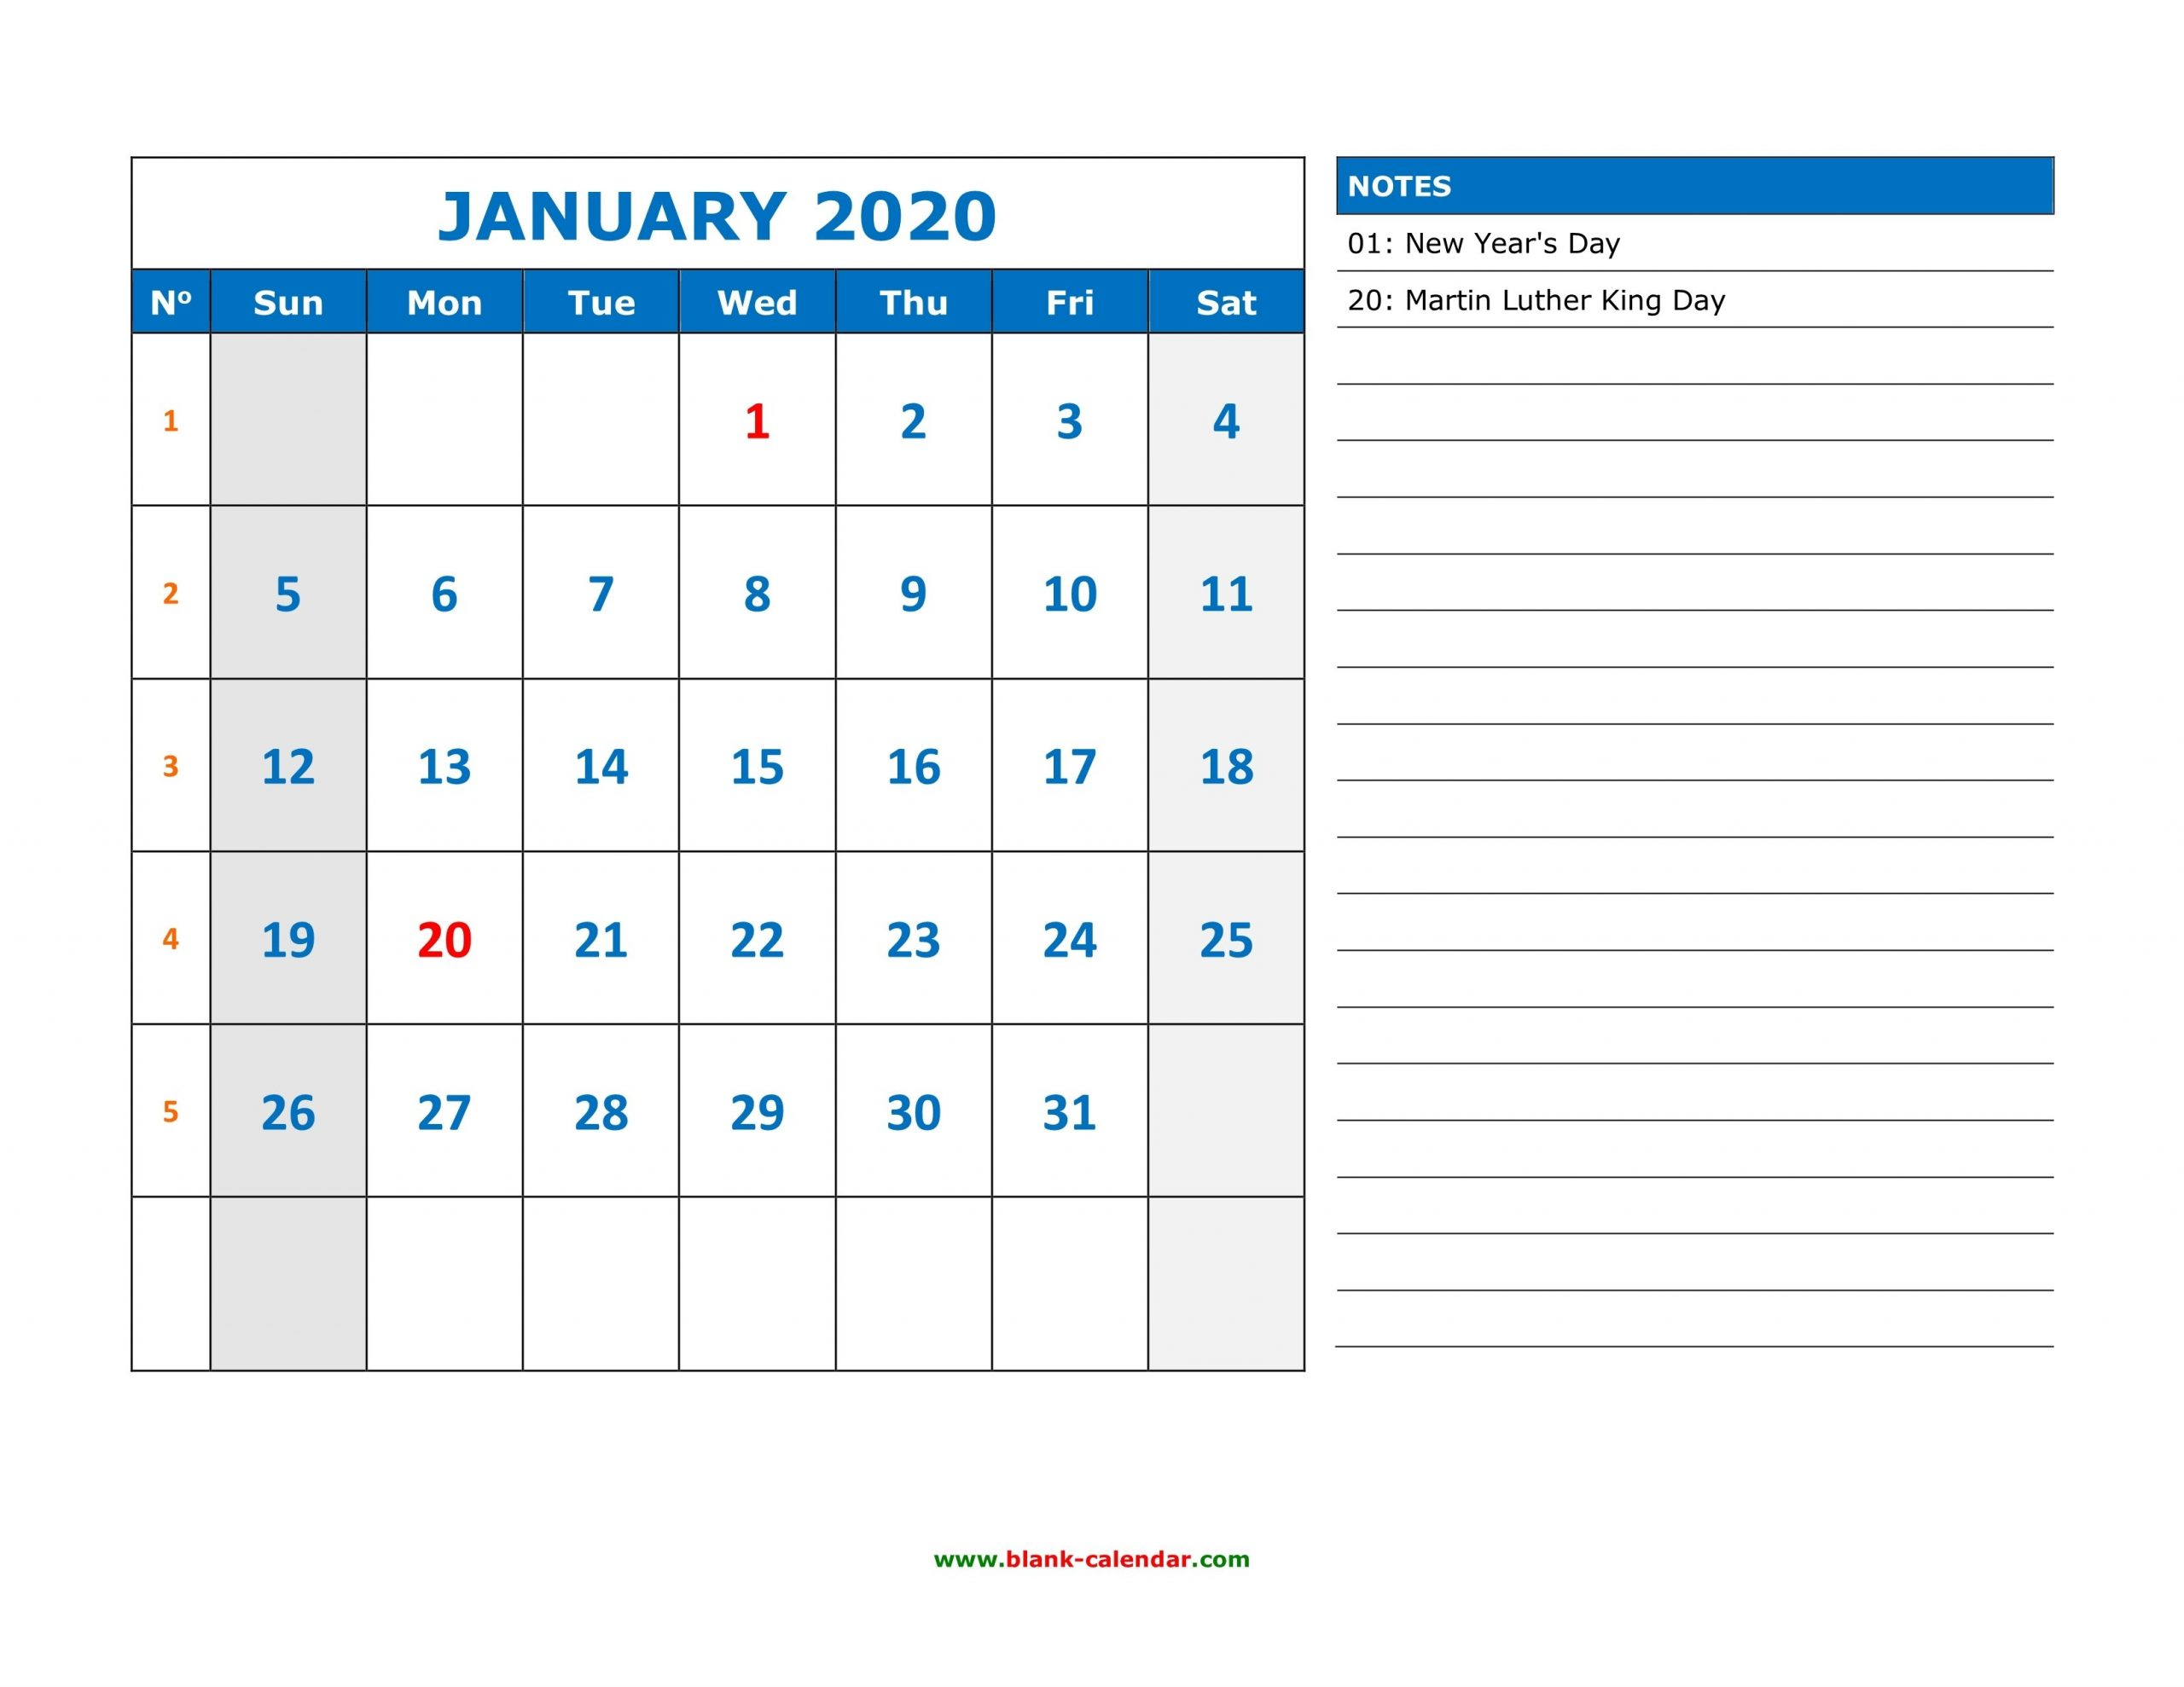 August 2020 Monthly Appointment   Example Calendar Printable intended for Free Calendars You Can Edit 2021 8 1/2 X 11 Image